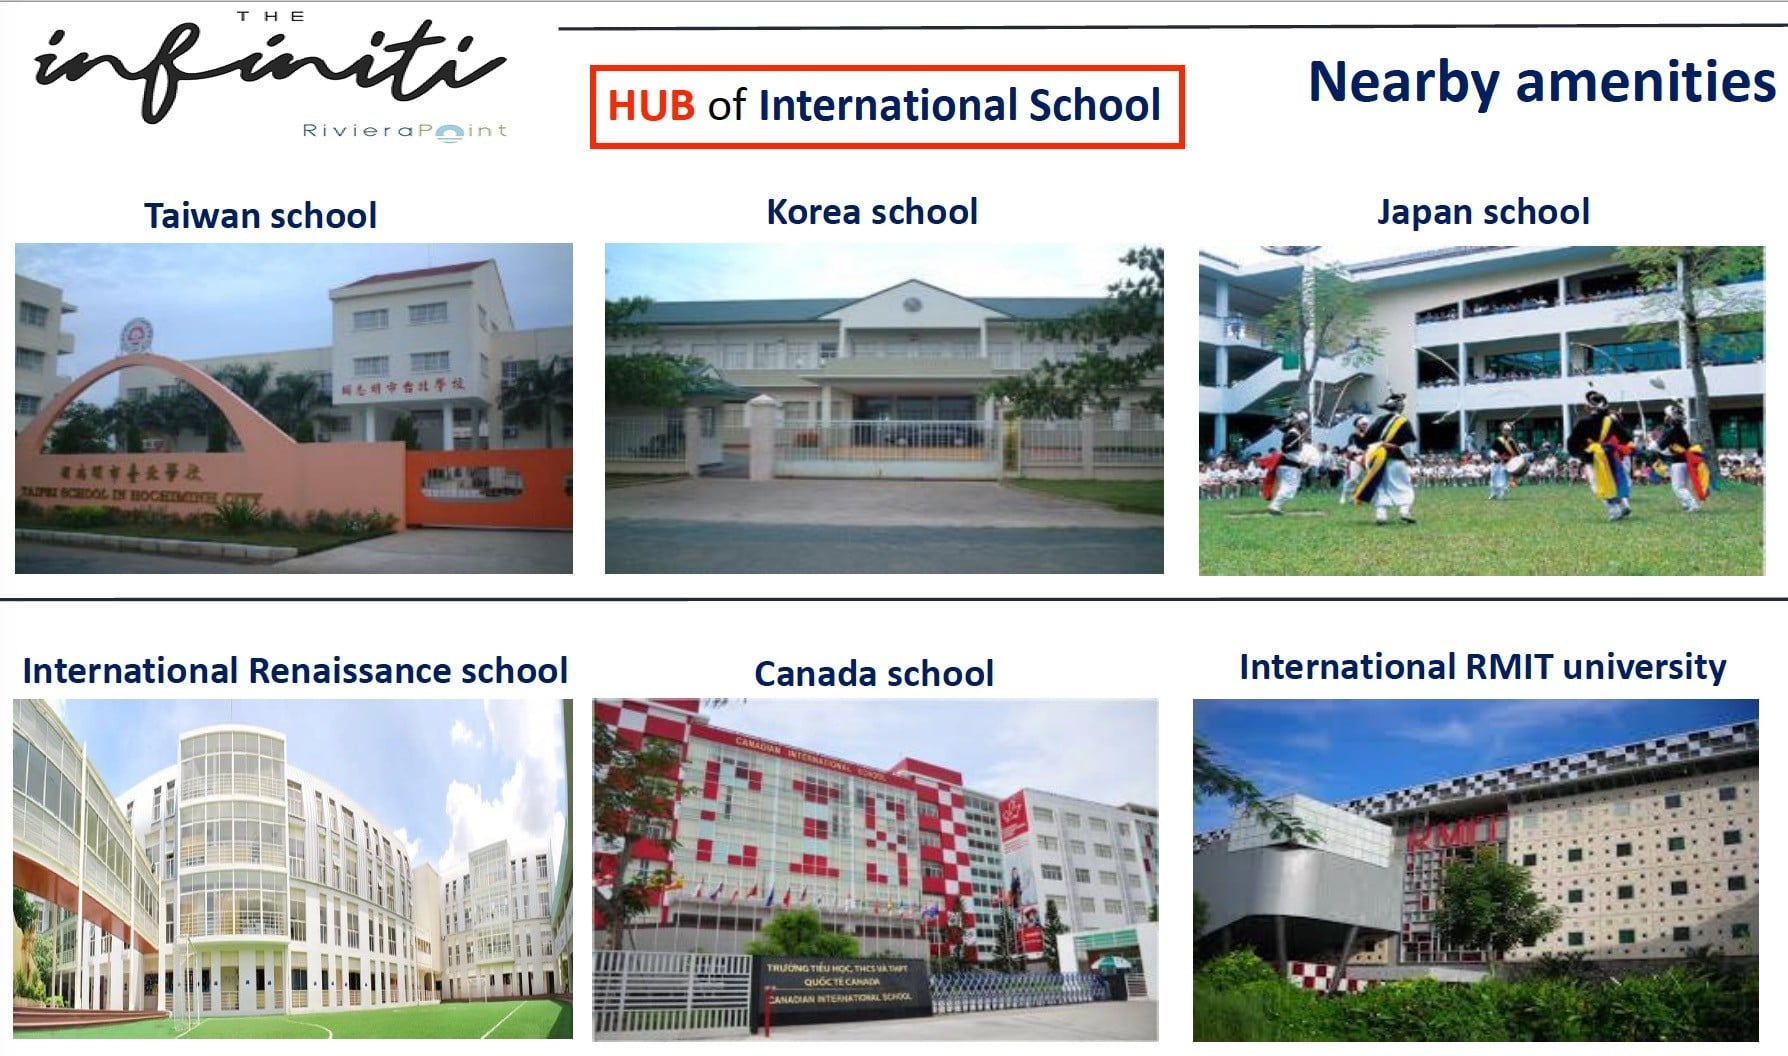 The Infiniti Vietnam School Nearby